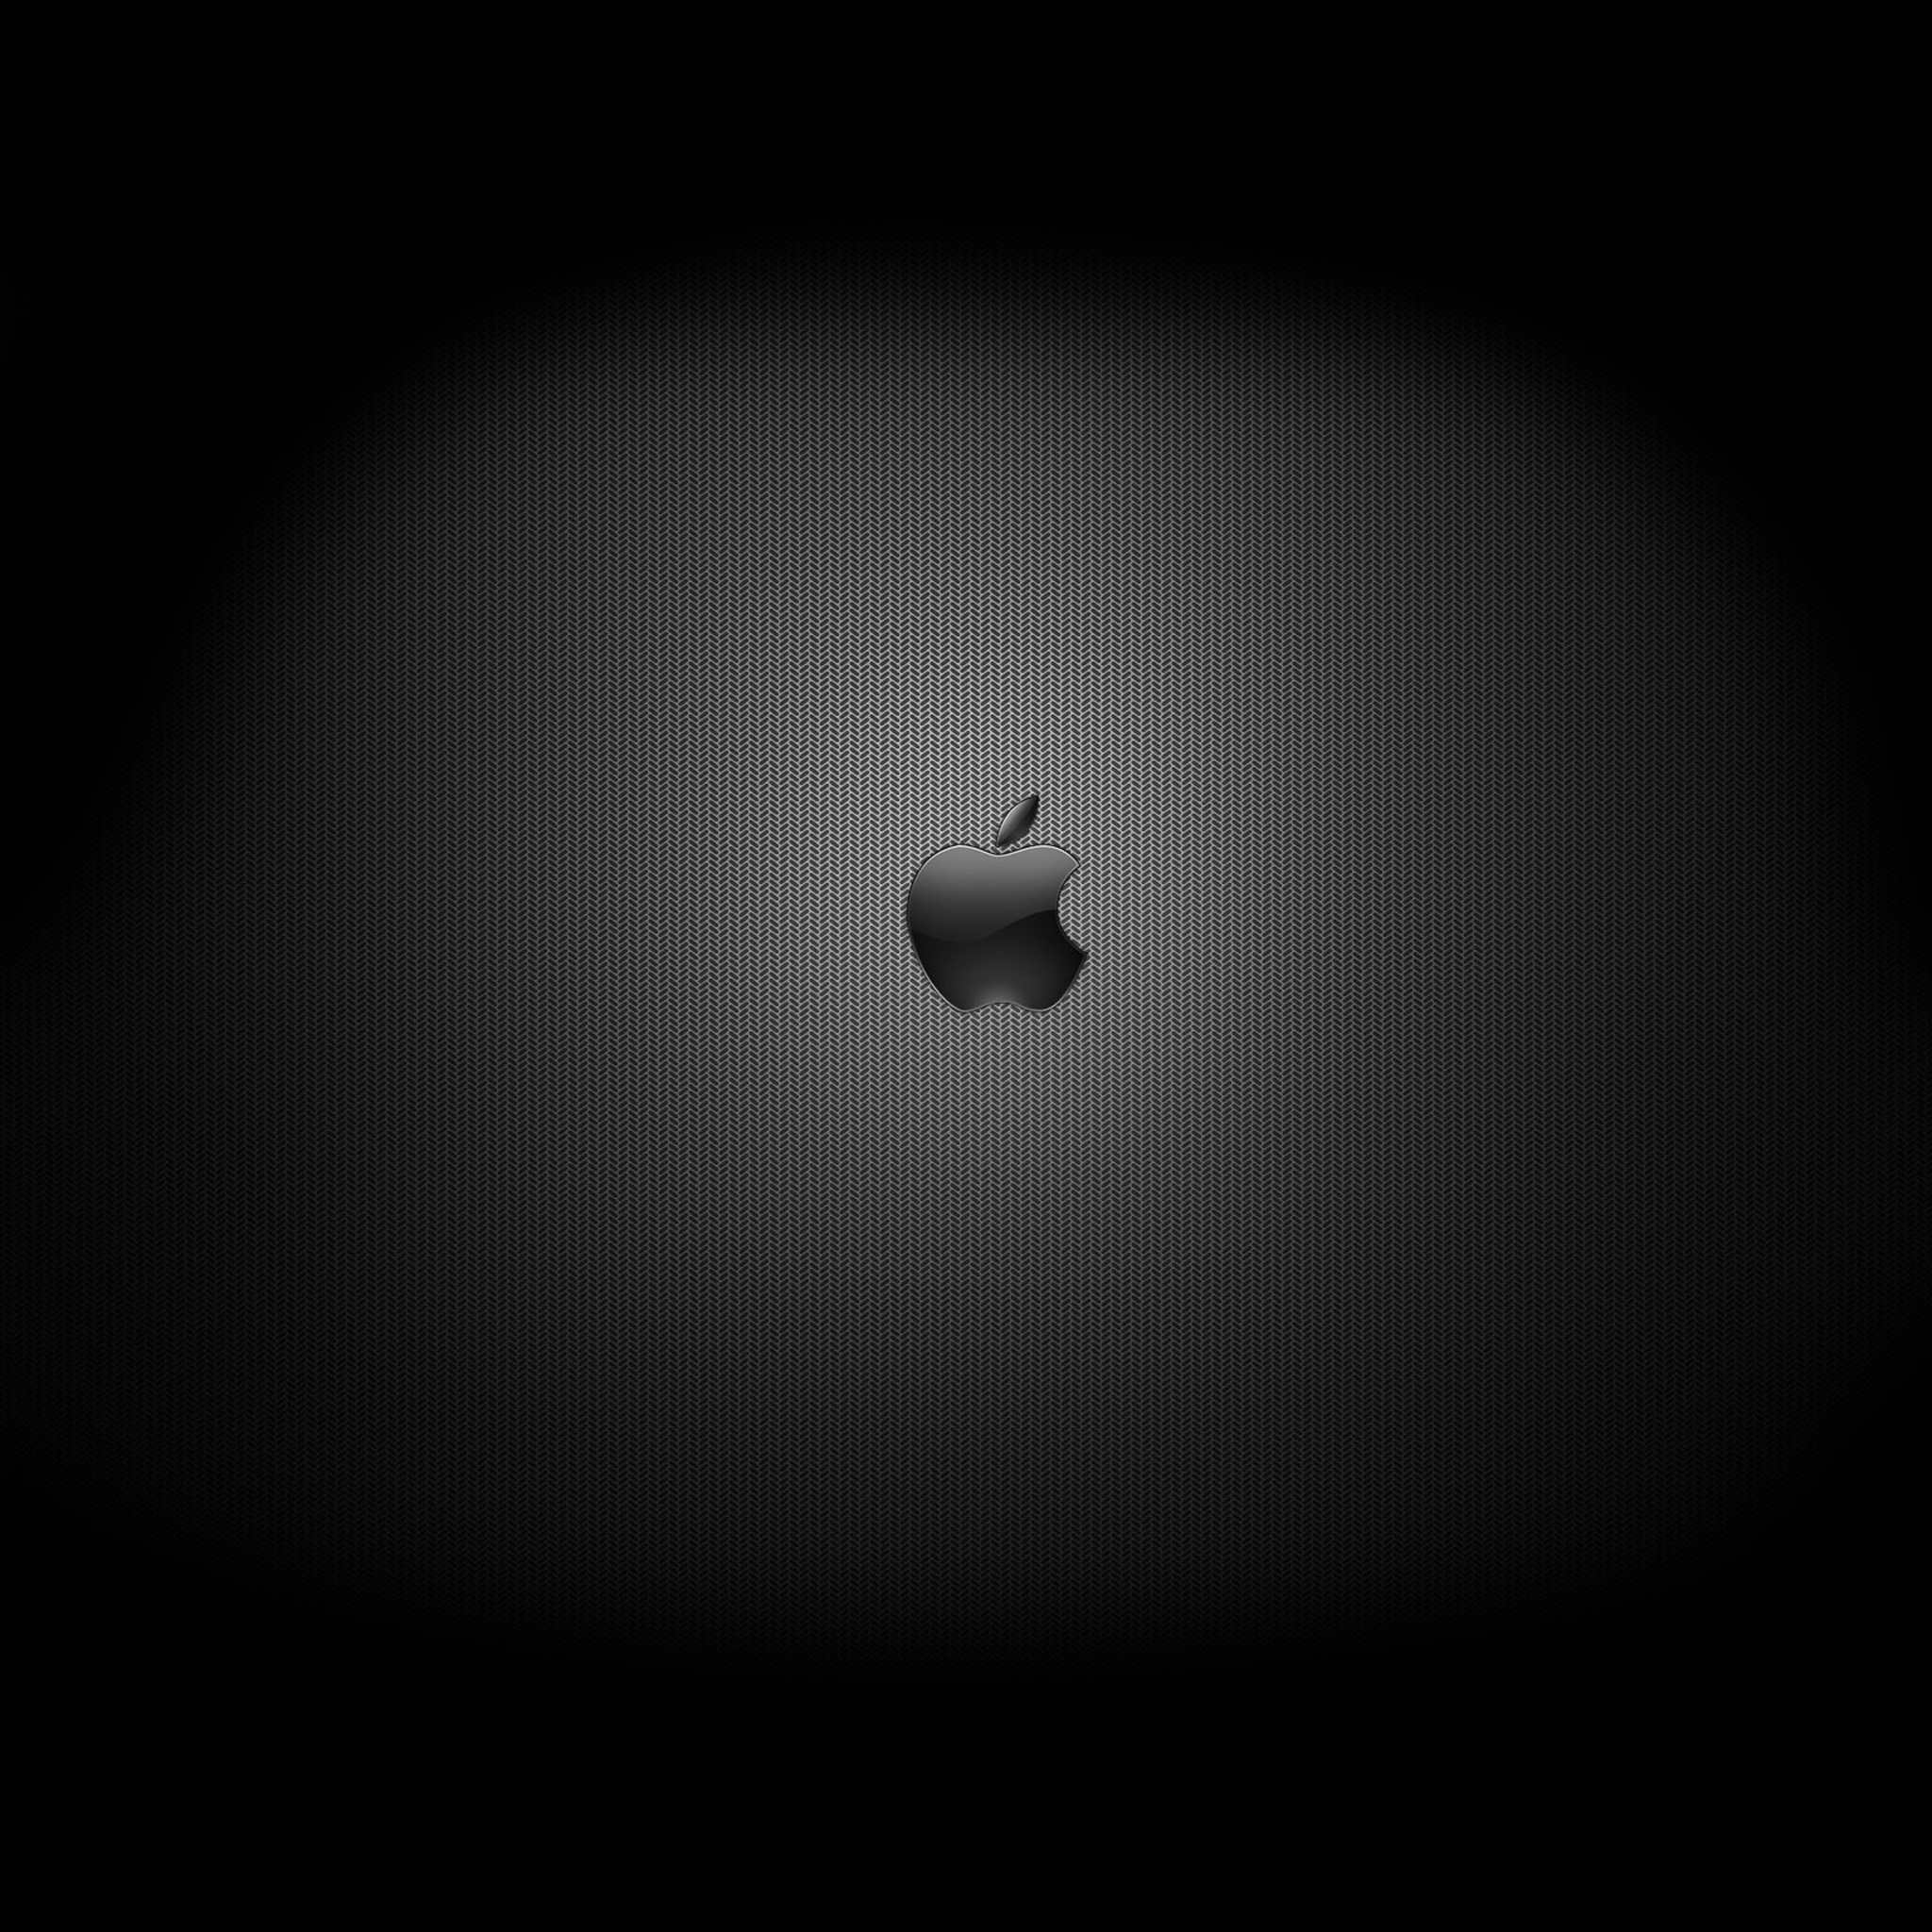 Dark Apple Logo 3Wallpapers iPad Retina Dark Apple Logo   iPad Retina